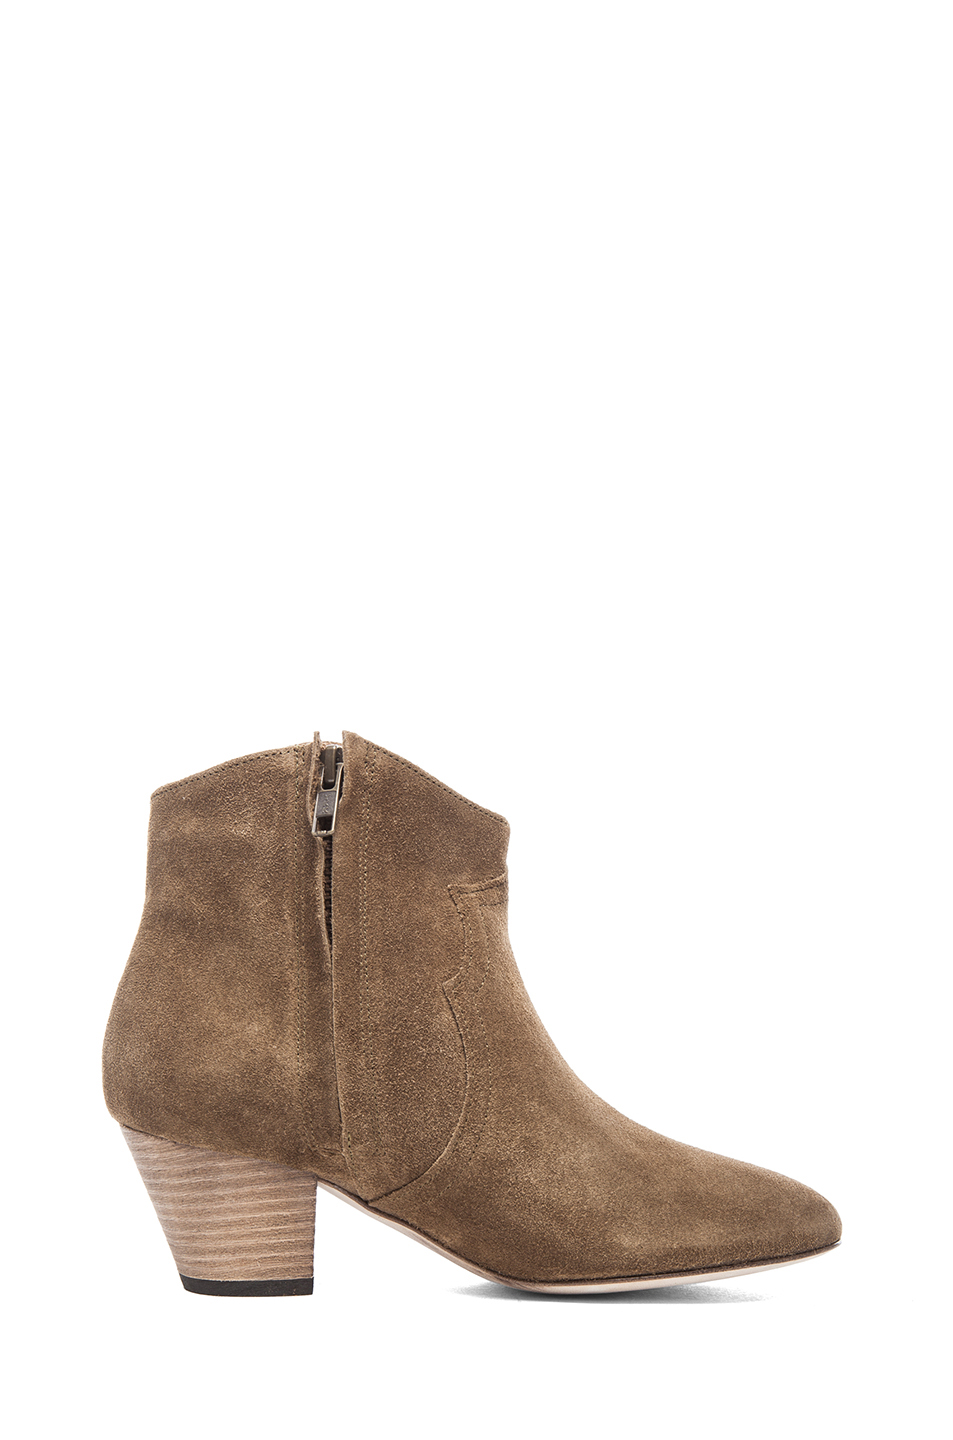 Isabel Marant | Dicker Calfskin Velvet Booties in Brown